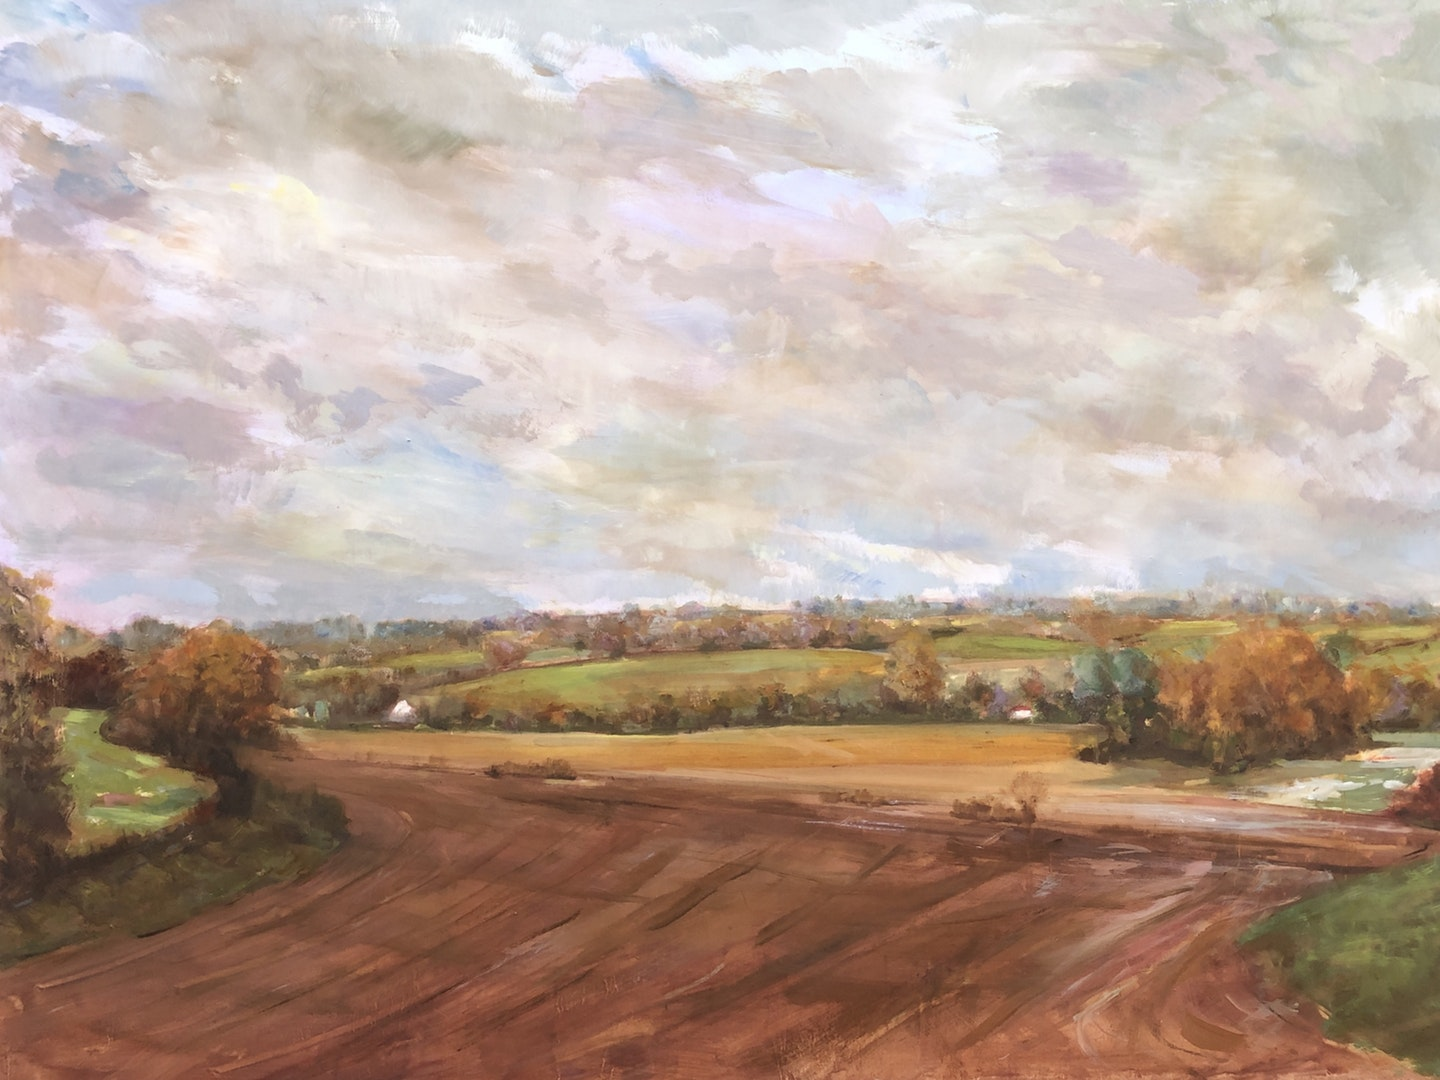 'Autumn Floods Brett Vale', Michael Crowe, Oil on plywood panel, 91 x 122 cm